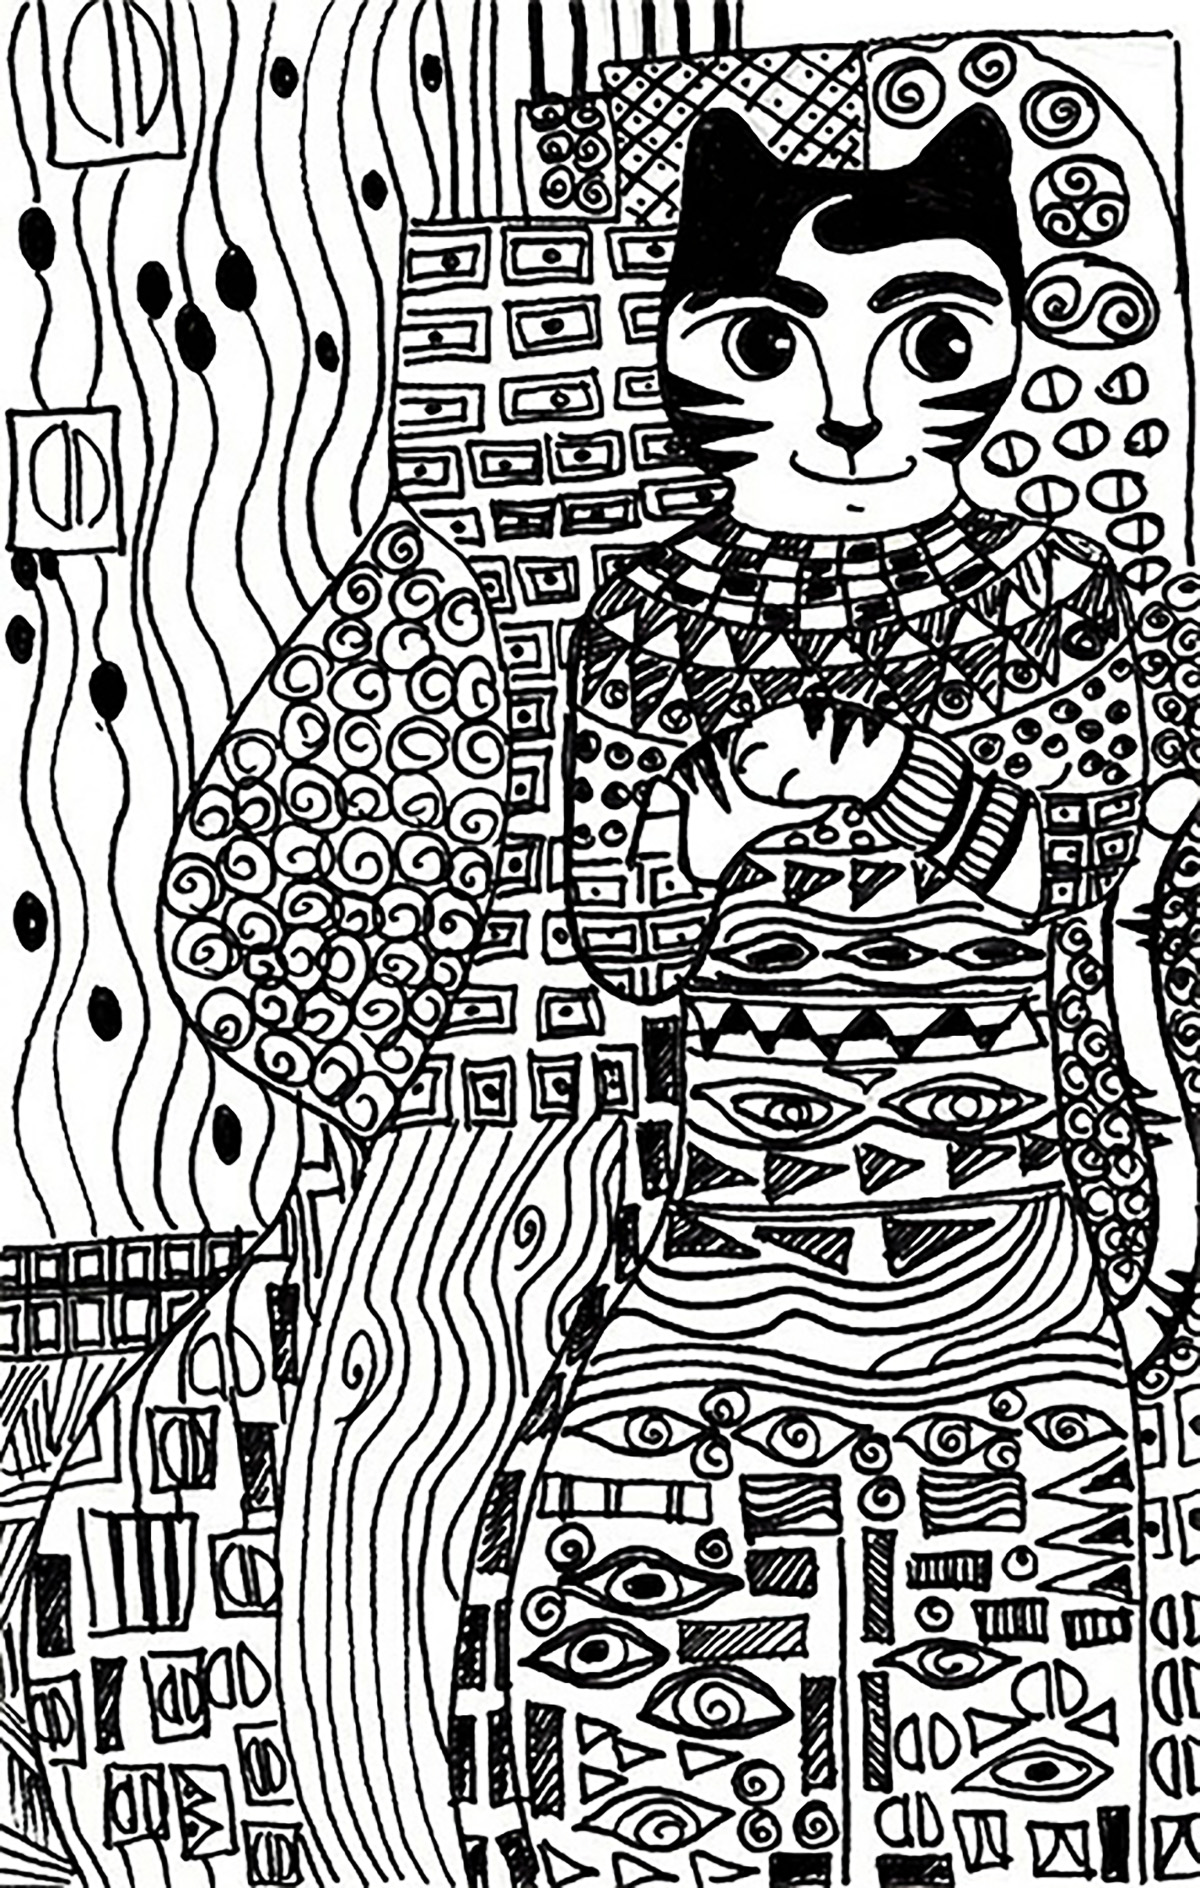 'Chat - inspiré par Klimt en phase dorée' par Cheri du site The Crafty sisters